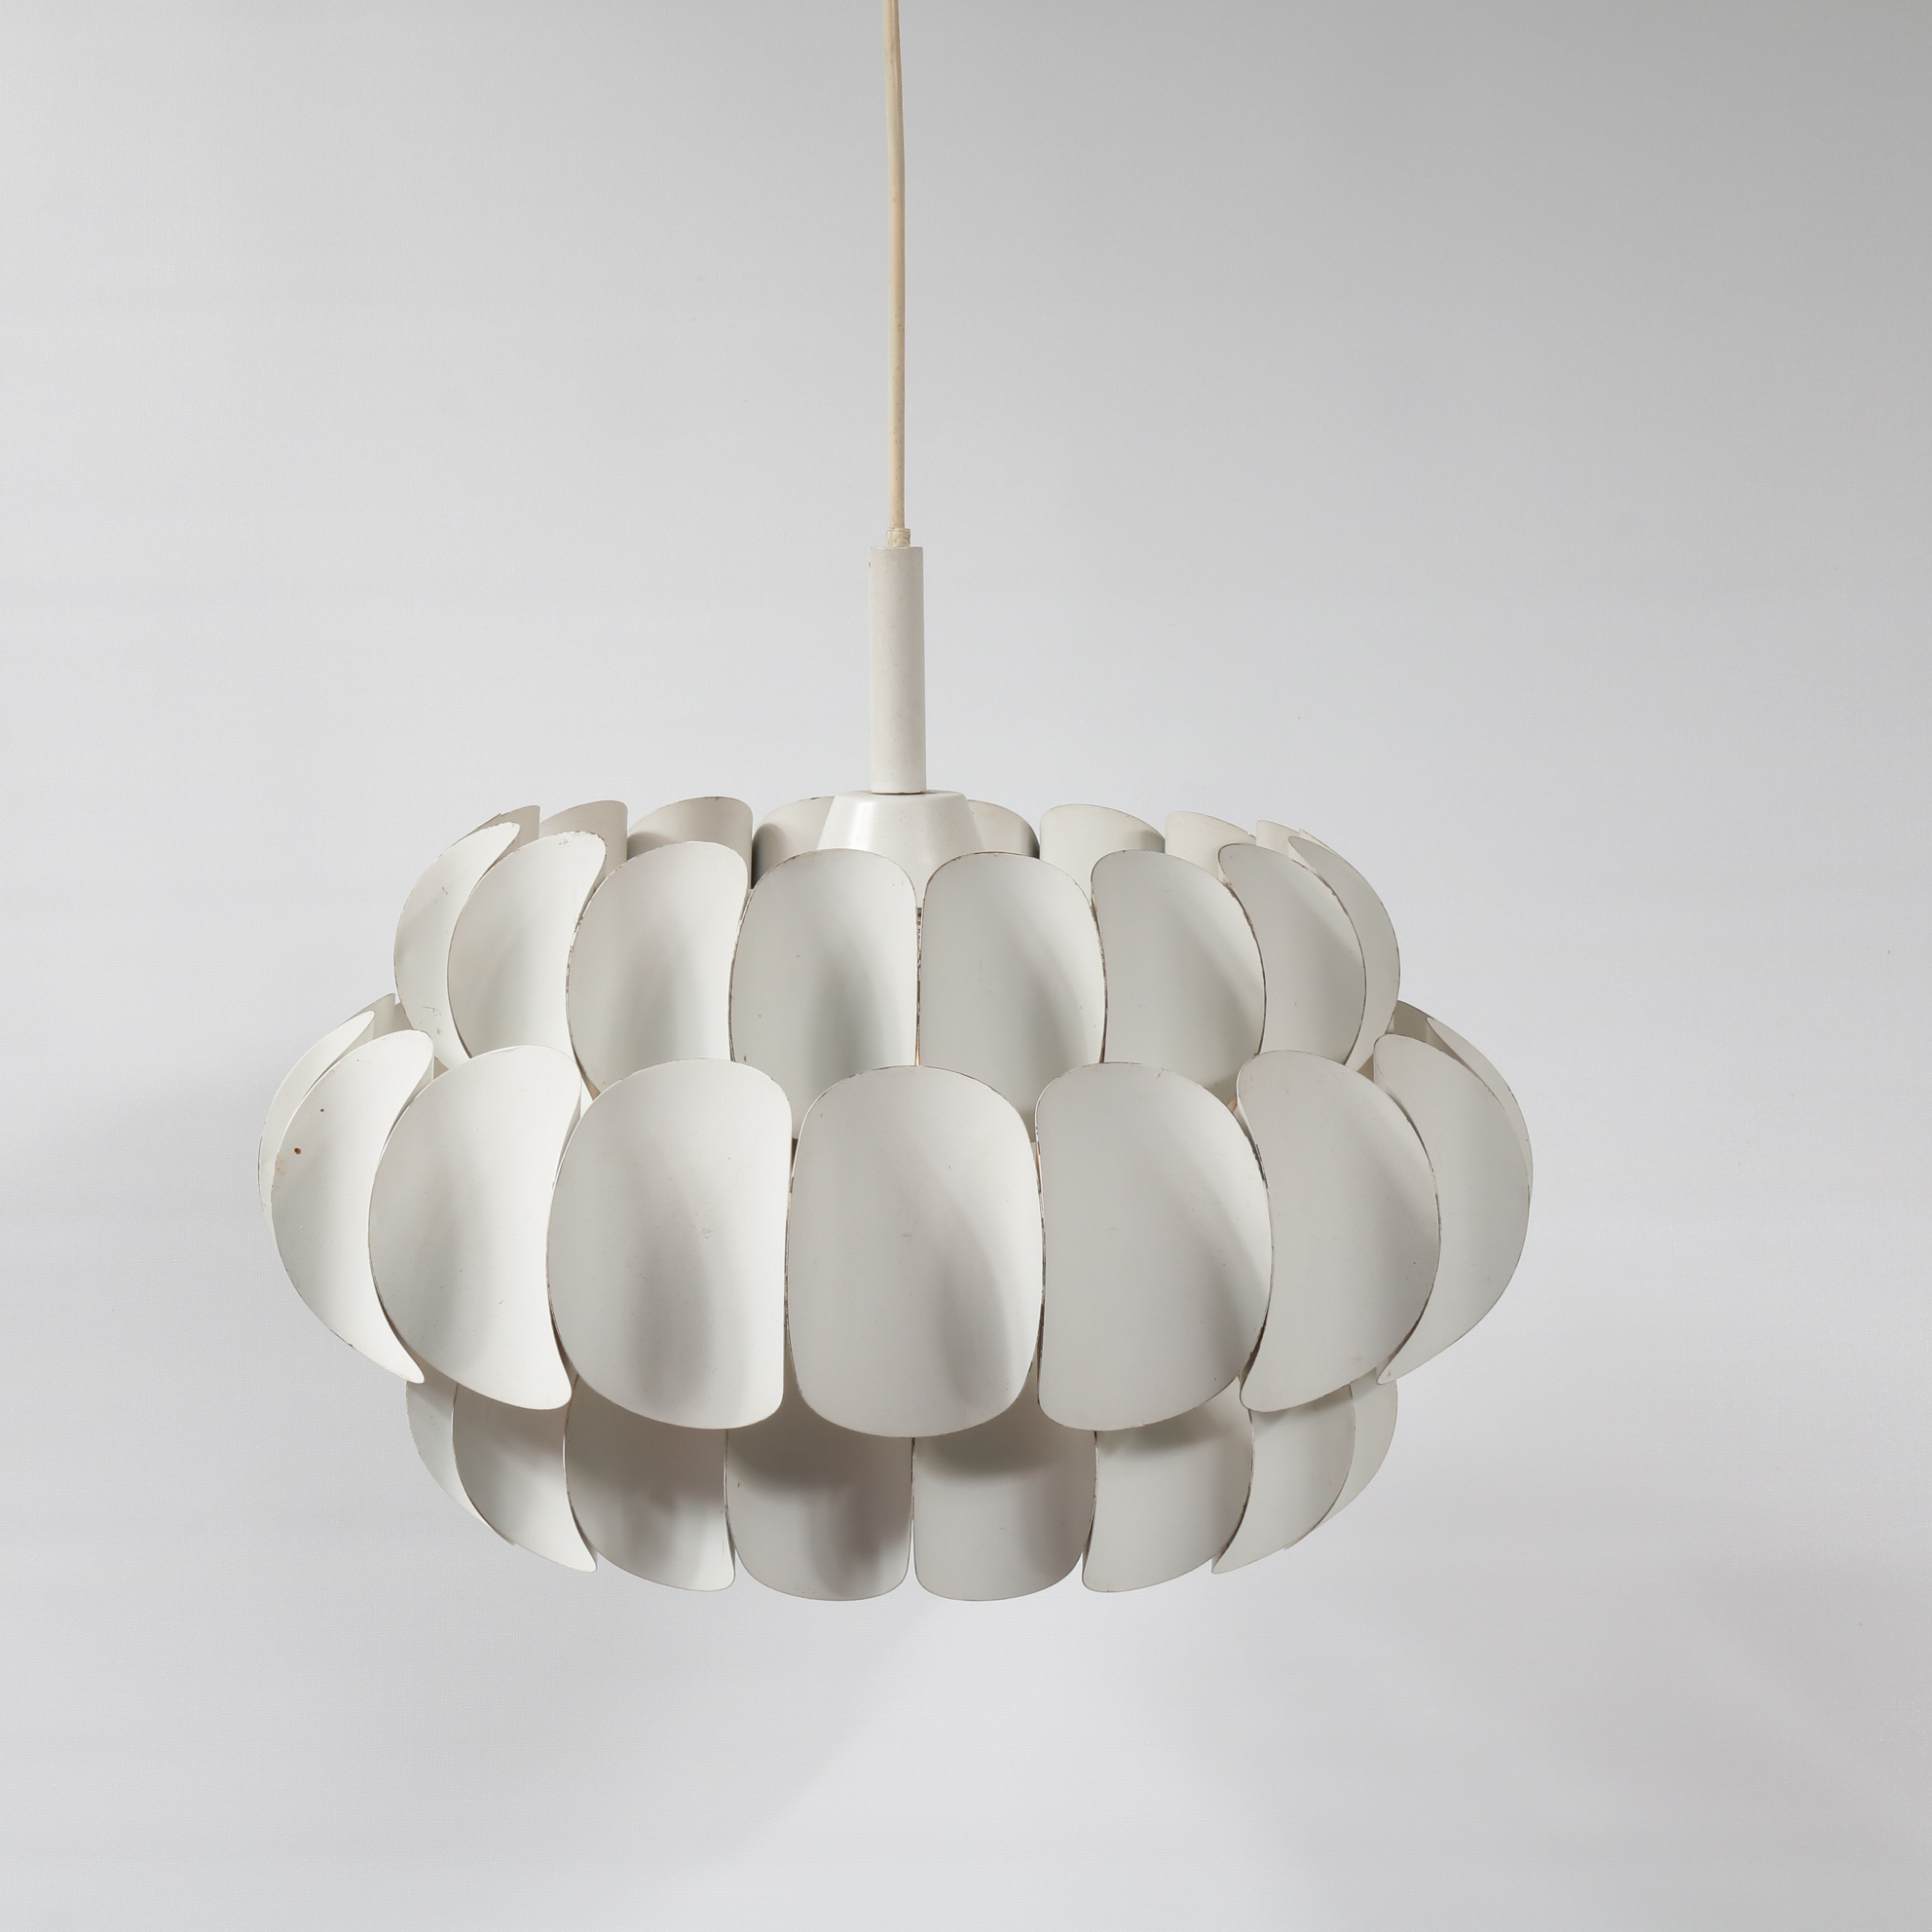 L4213 1960s White metal hanging lamp with three ring layers Thorsten Orrling Hans Agne Jacobsen / Sweden